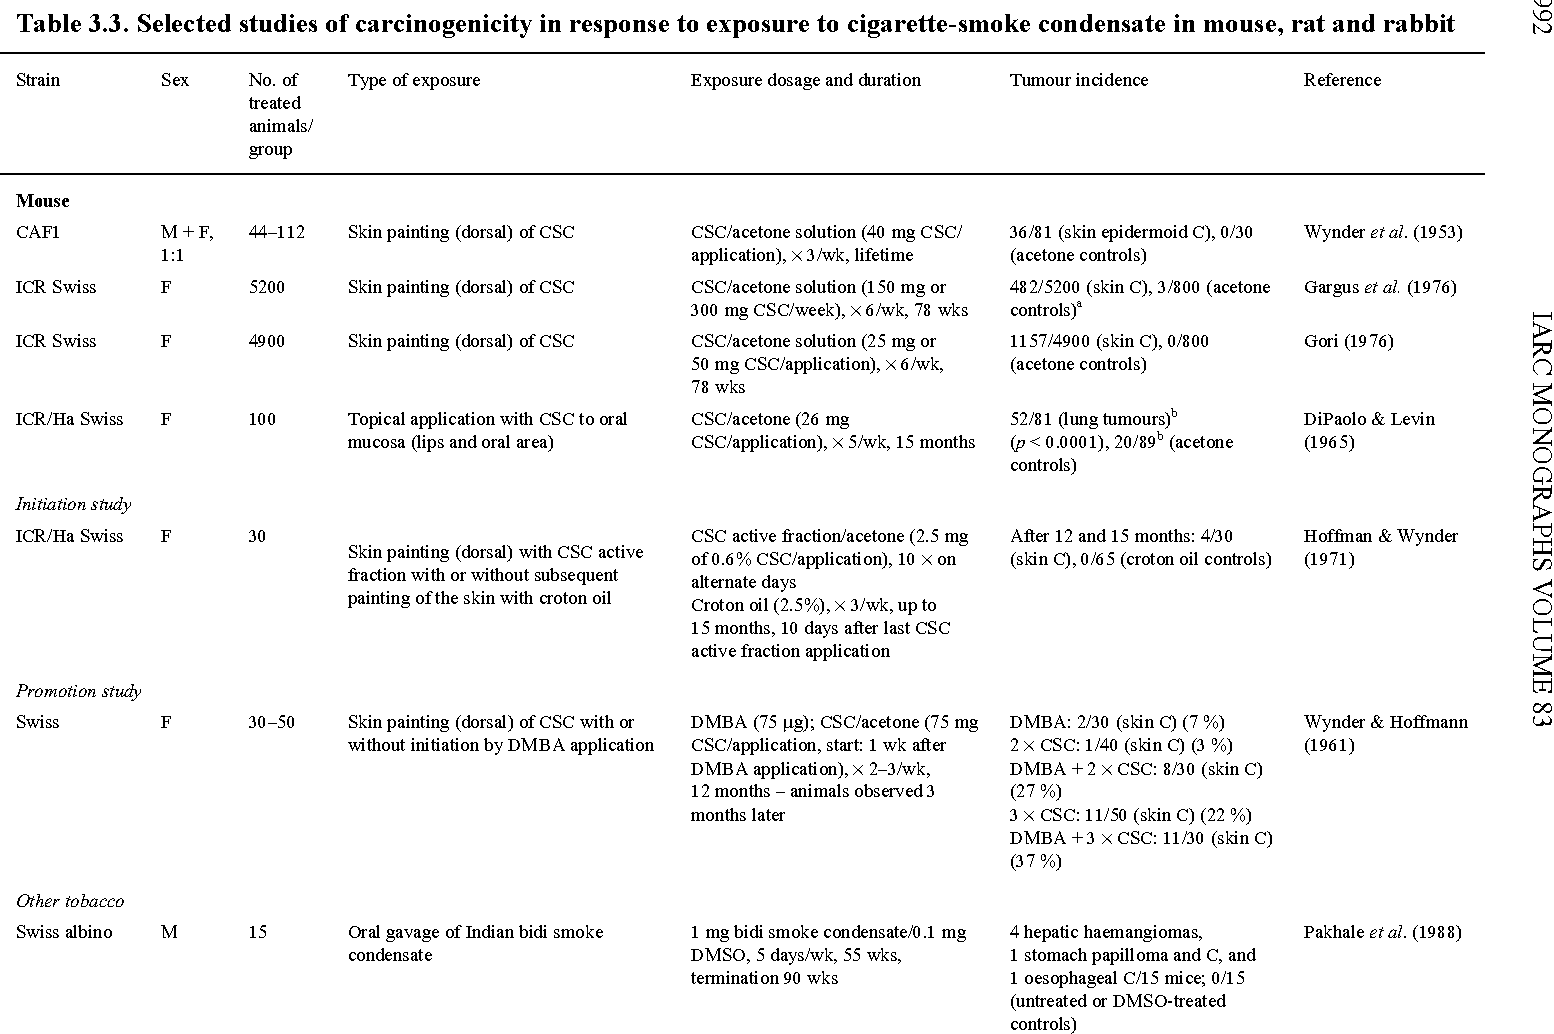 table 3.3 from 3. carcinogenicity studies in experimental animals